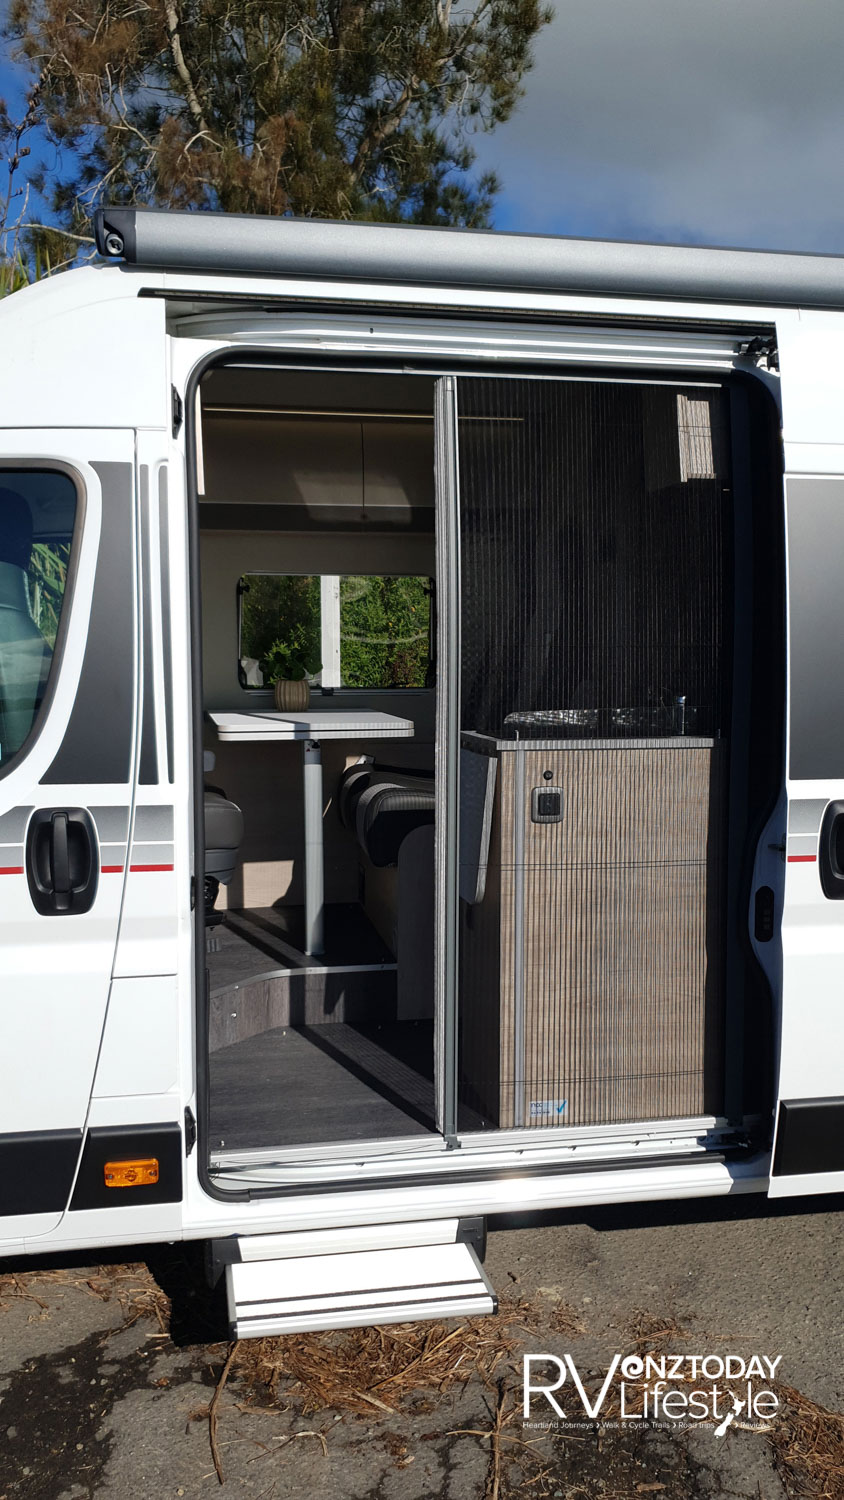 The sliding door opens, the electric step pops out as required, and a new feature for these types of vehicles - a pull-out full door-width fly screen. The wind-out awning is full body length above